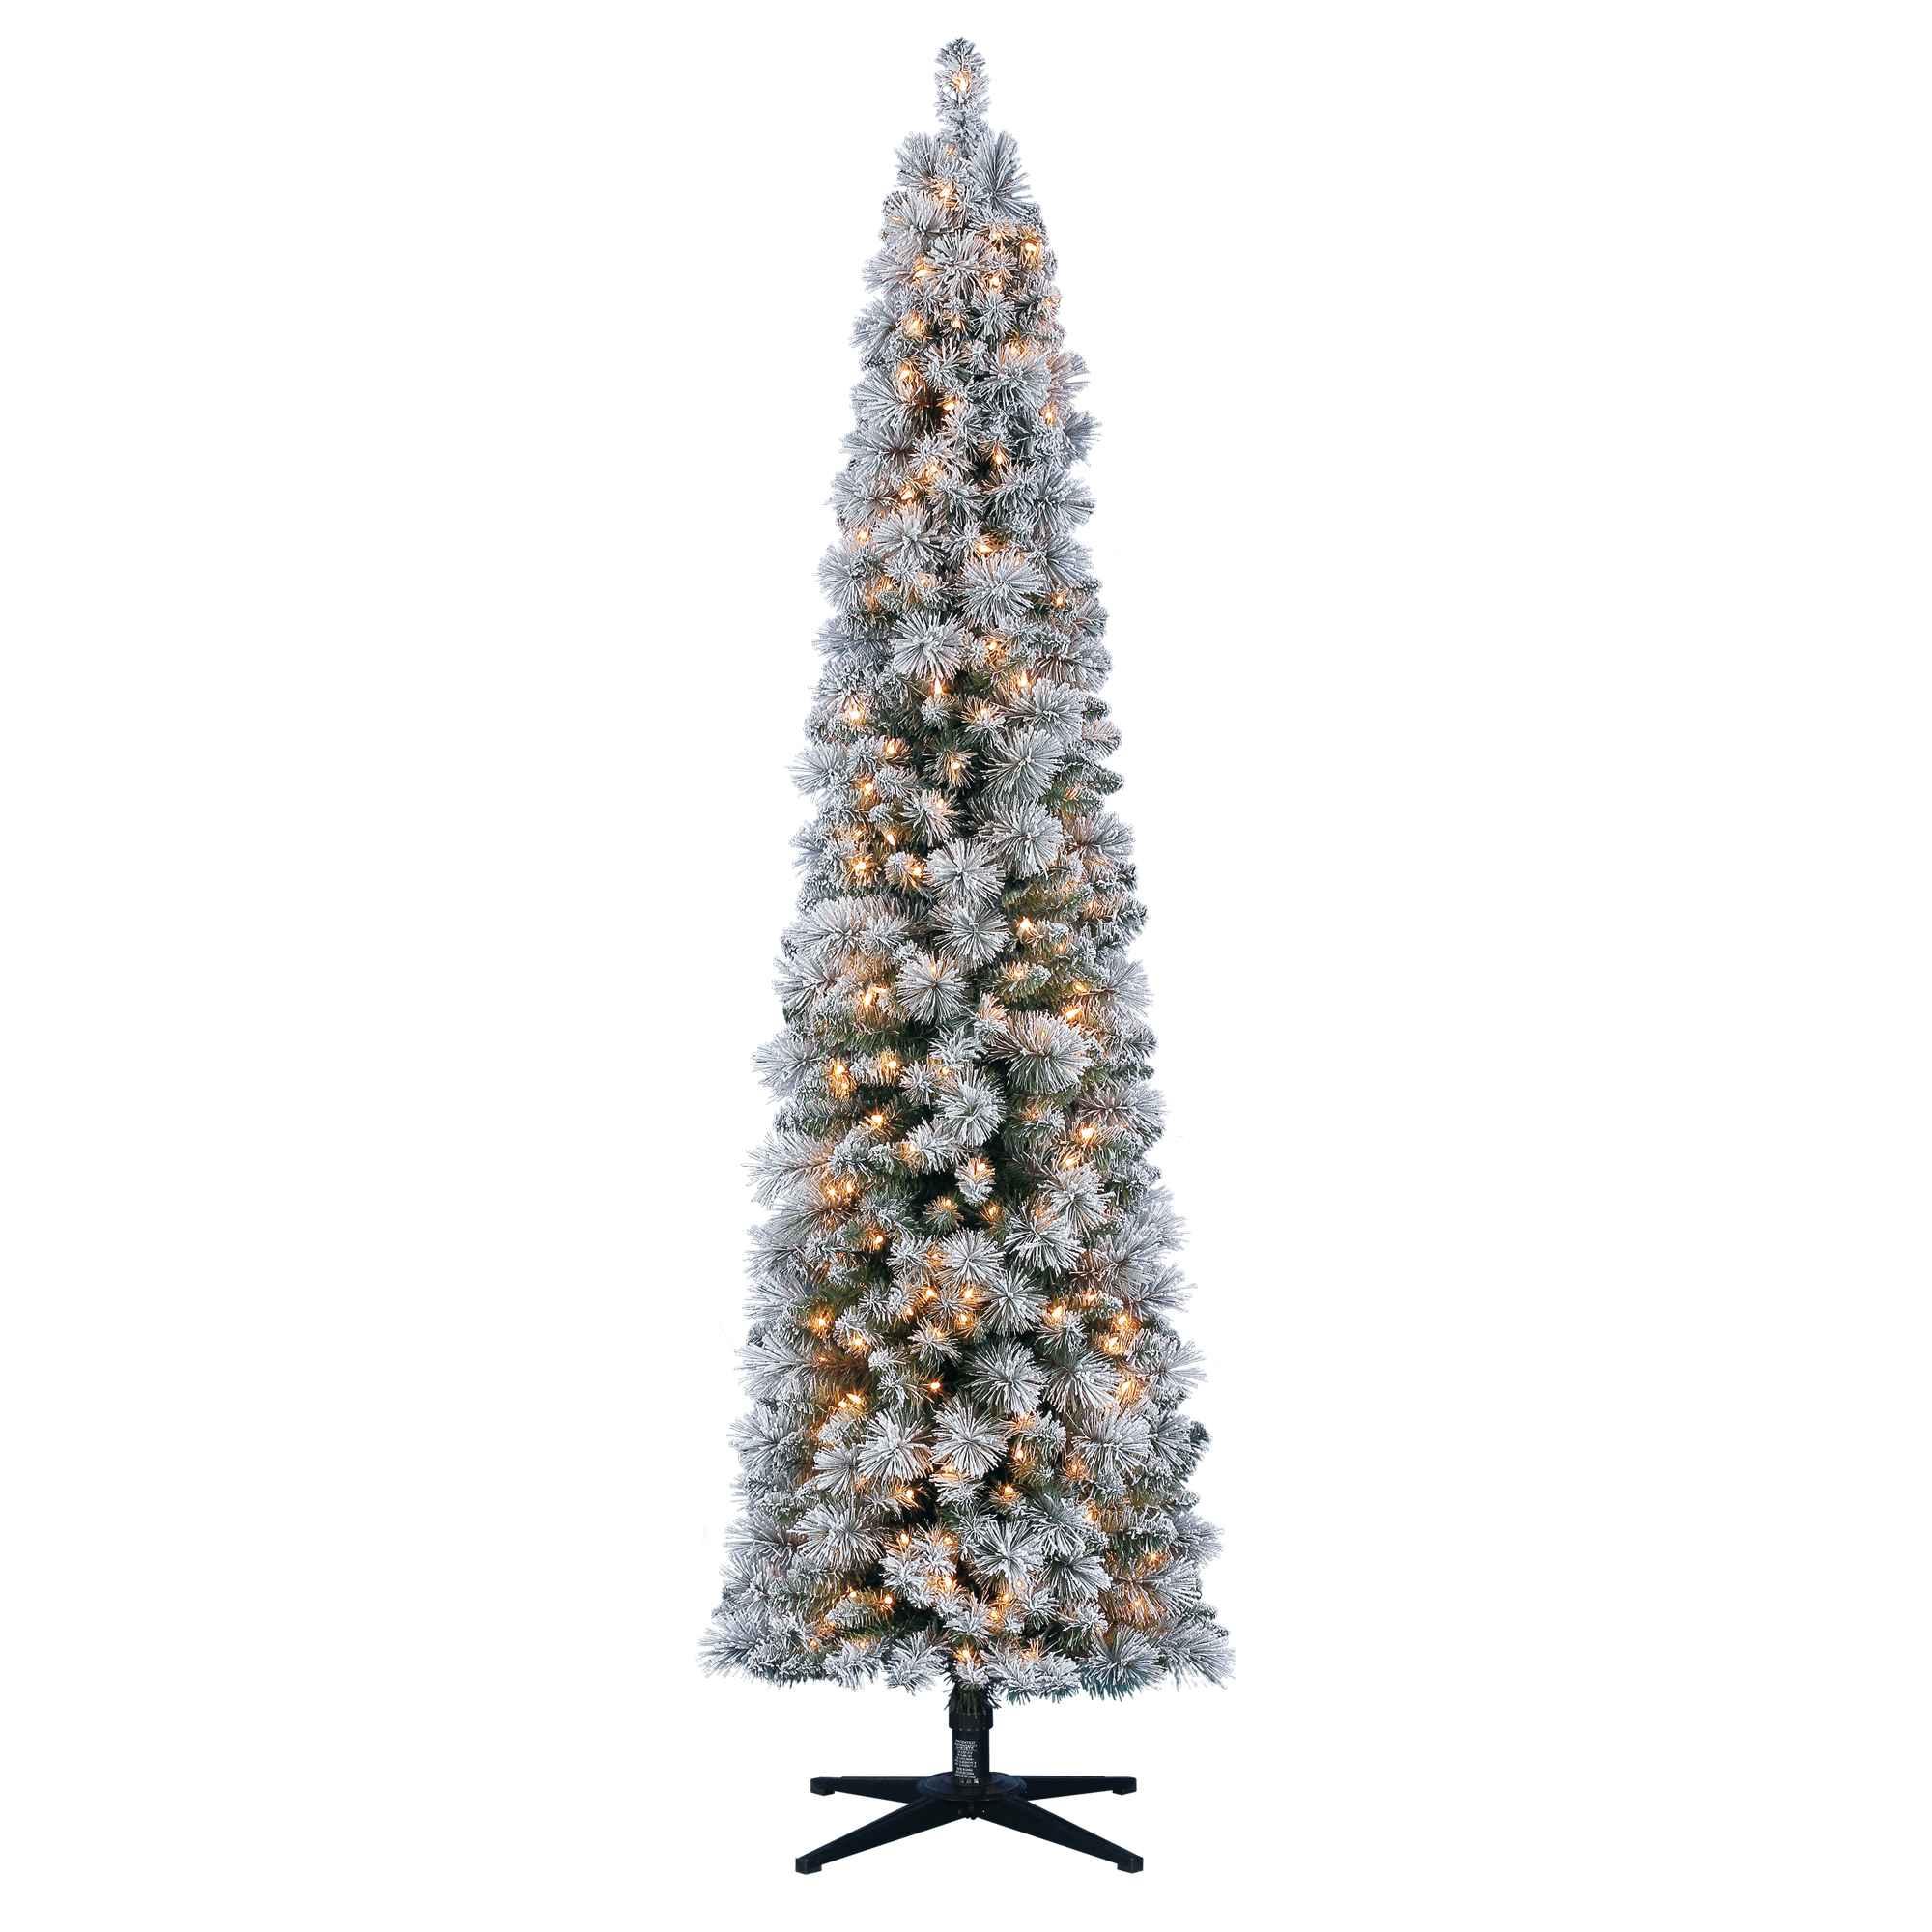 Holiday Time 7ft Pre-Lit Flocked Pencil Colorado Artificial Christmas Tree with 250 Clear Lights - Green